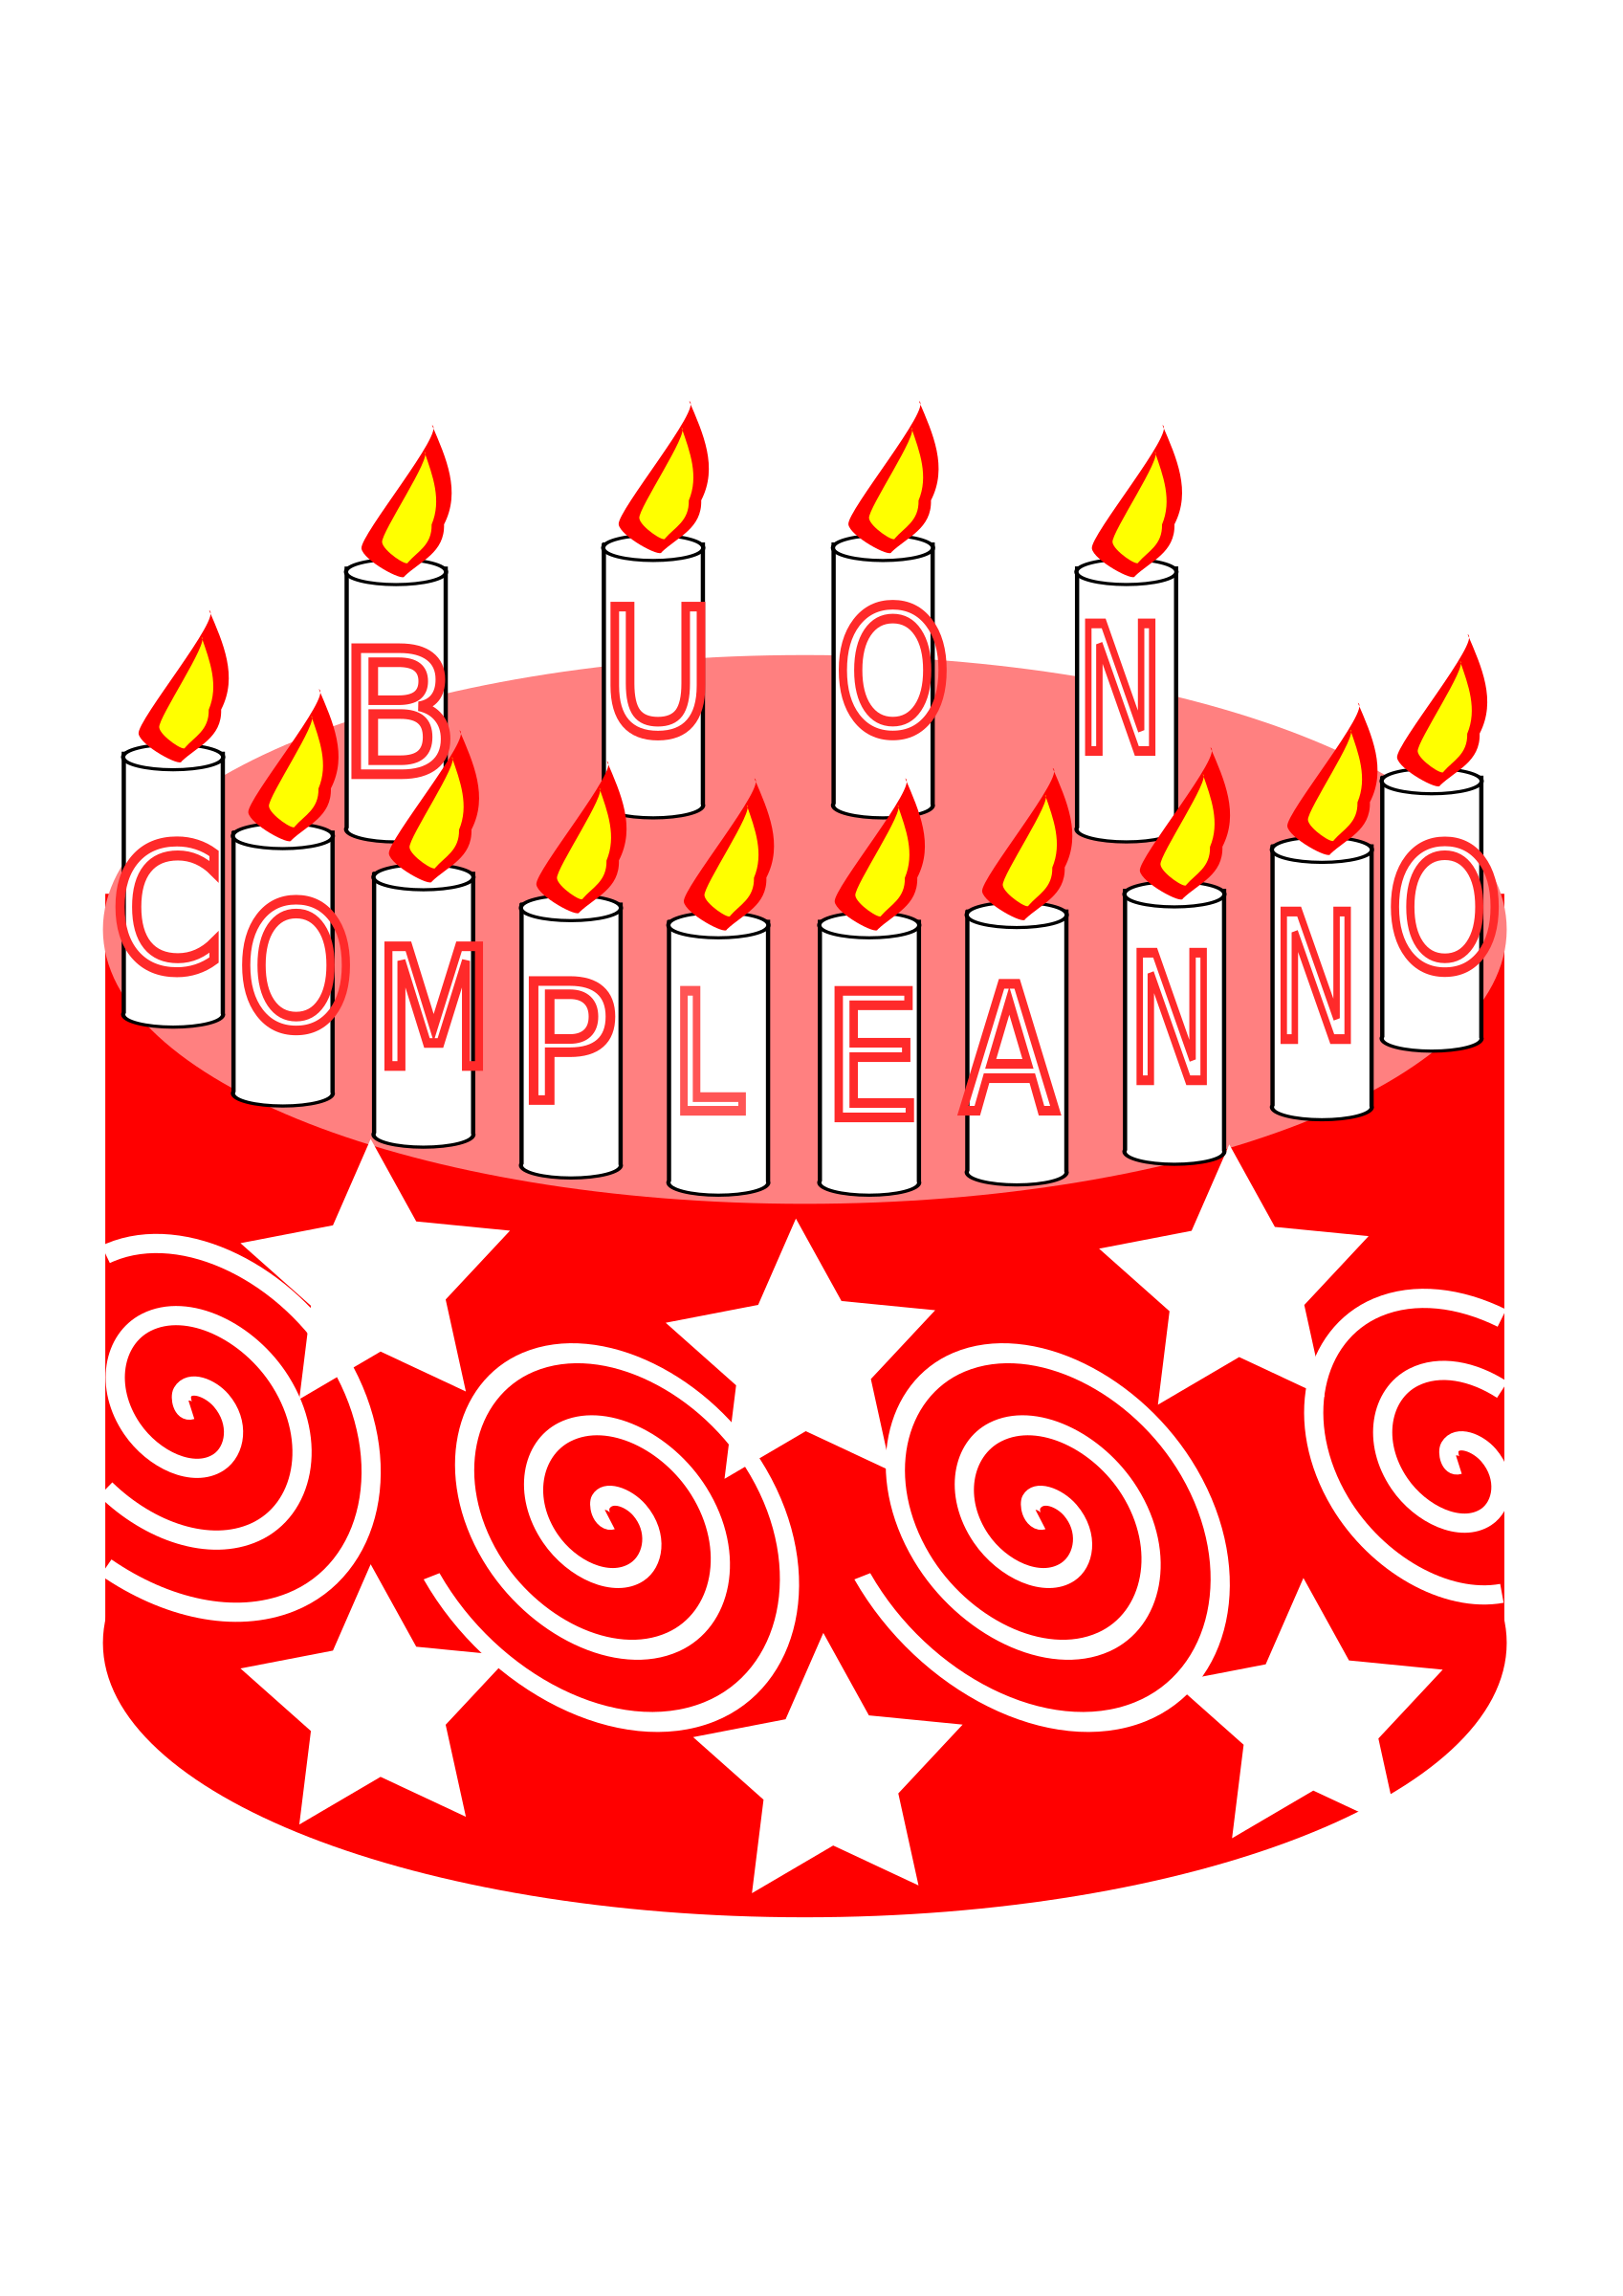 Buon compleanno by inkscapeforum.it